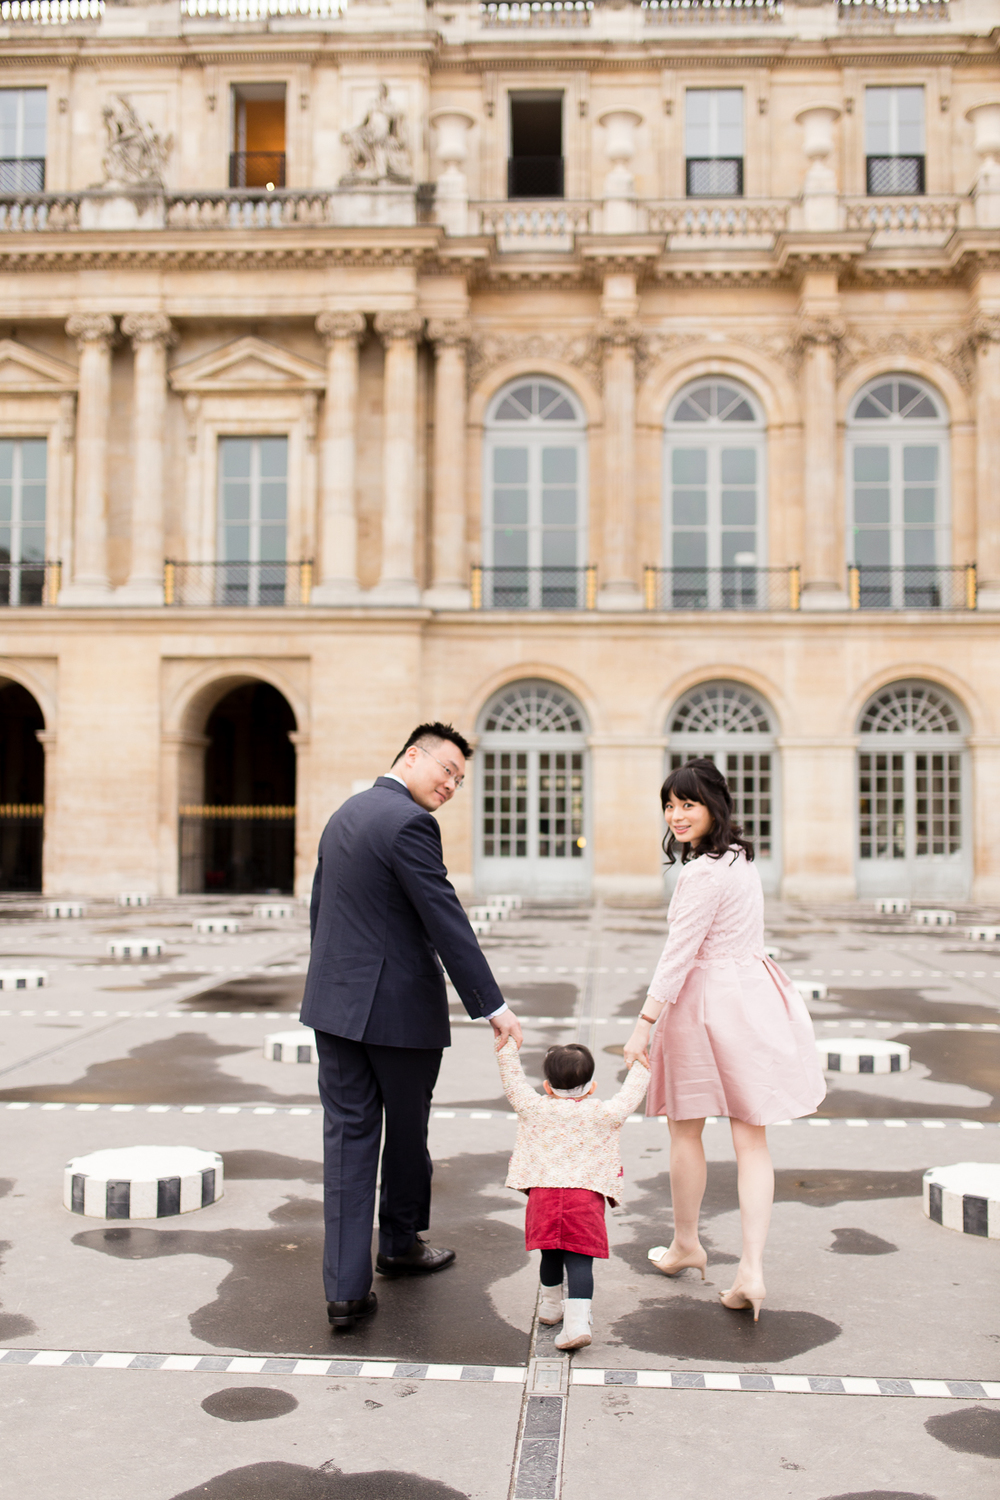 spring-fall-family-maternity-paris-palais-royal-louvre-photo-session-inspiration-2